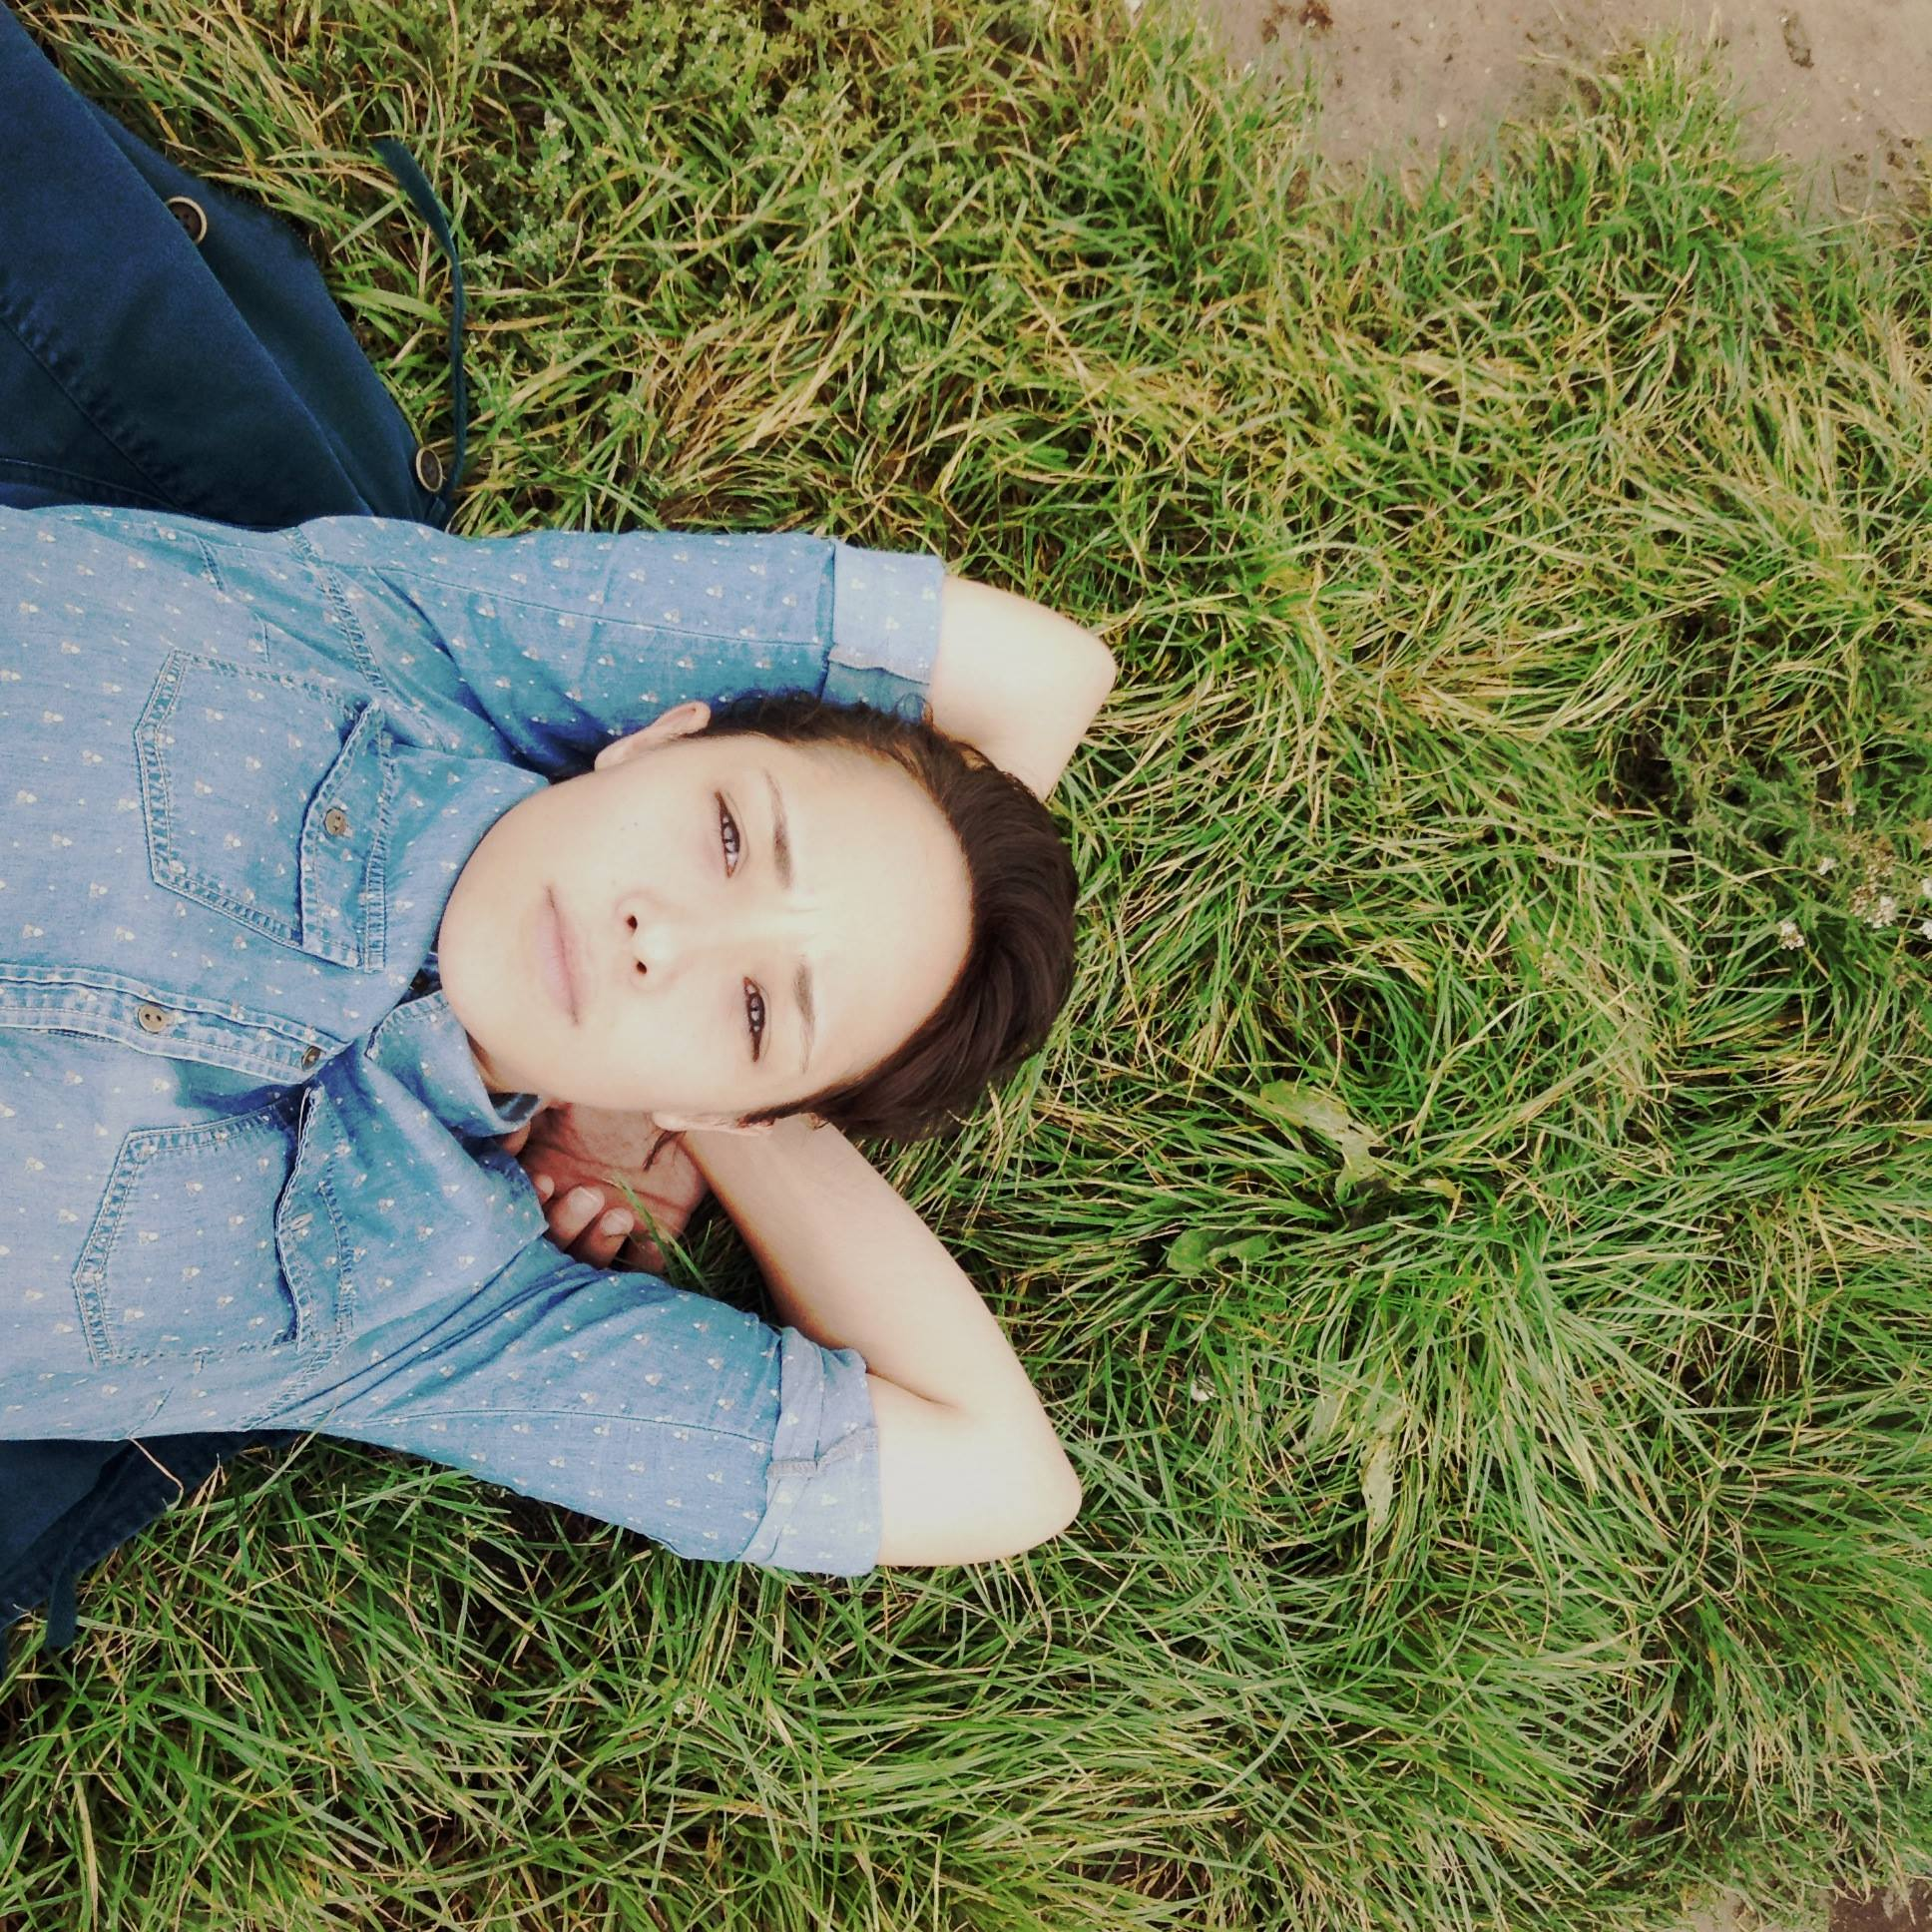 Ritty Tacsum photographer - color portrait of the photographer, lying on her back, on grass, looking at the camera